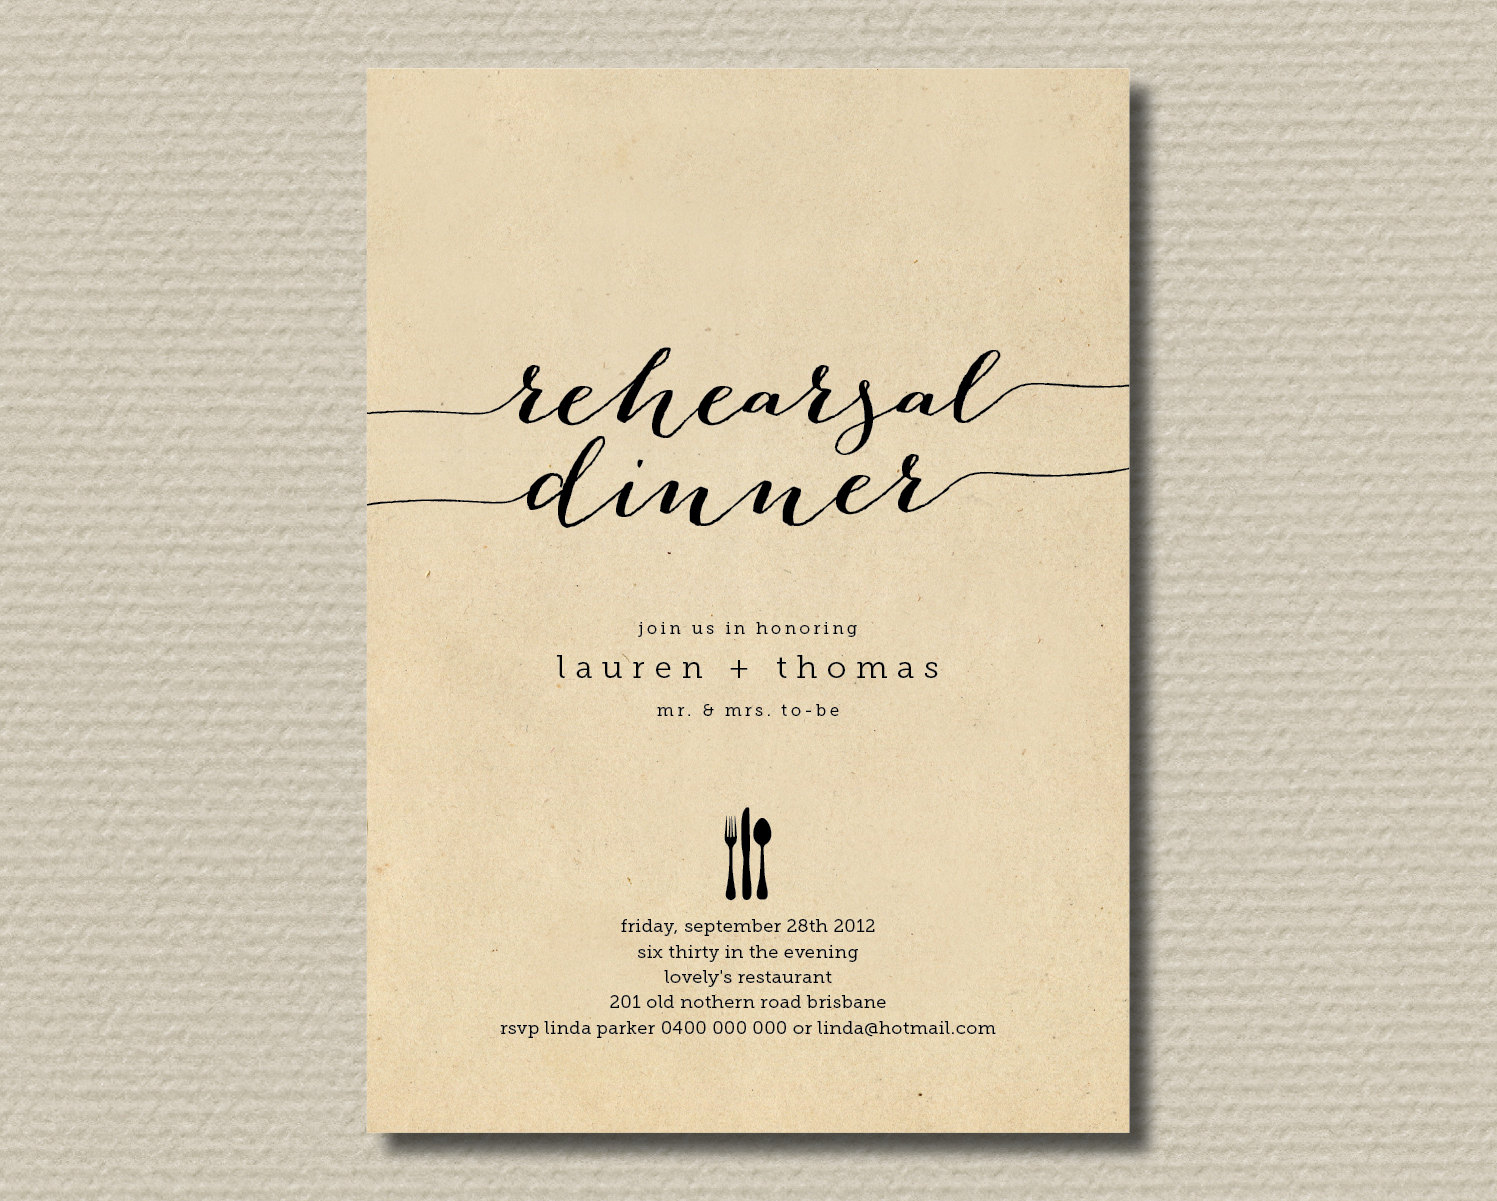 10 Affordable Places to Find Rehearsal Dinner Invitations BestBride101